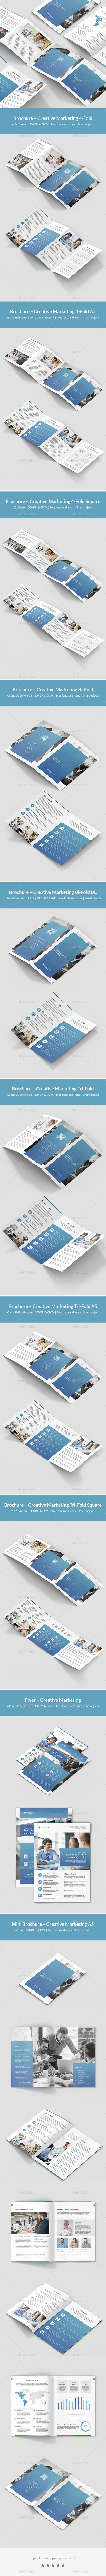 Creative Marketing – Brochures Bundle Print Templates 10 in 1 - Corporate Brochures